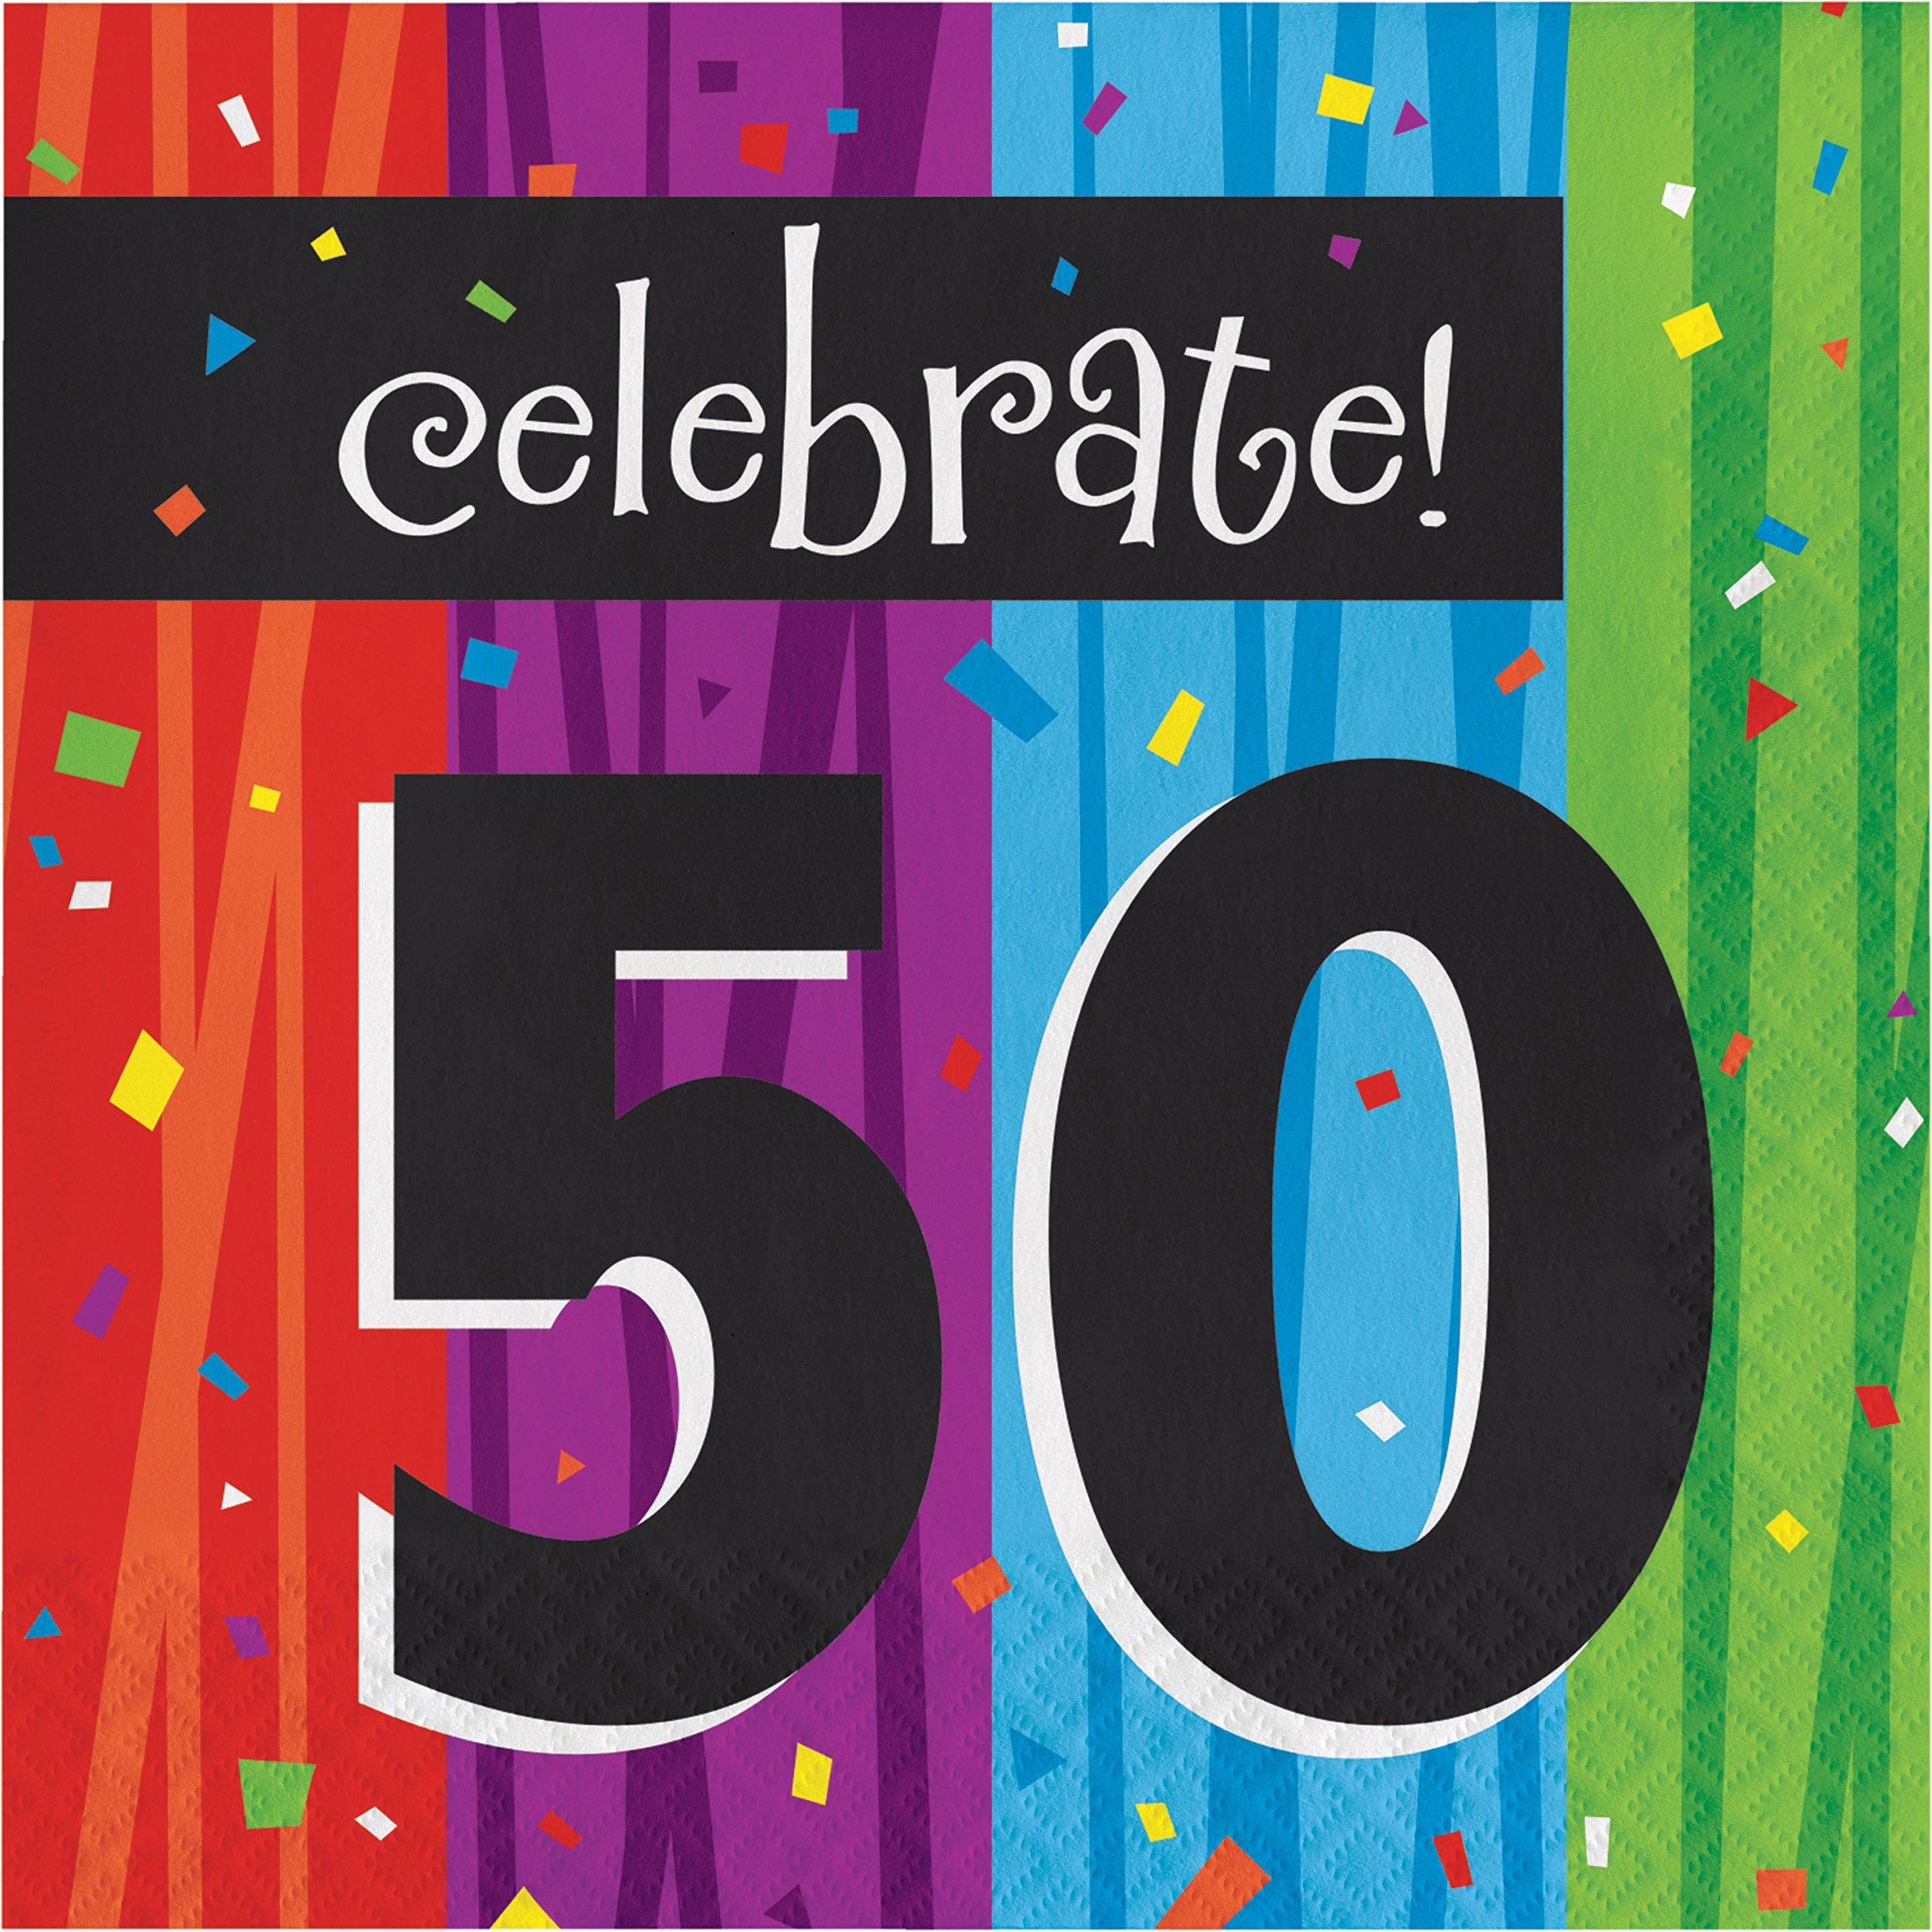 Milestone Celebrations 50th Birthday Napkins, 48 ct by Creative Converting